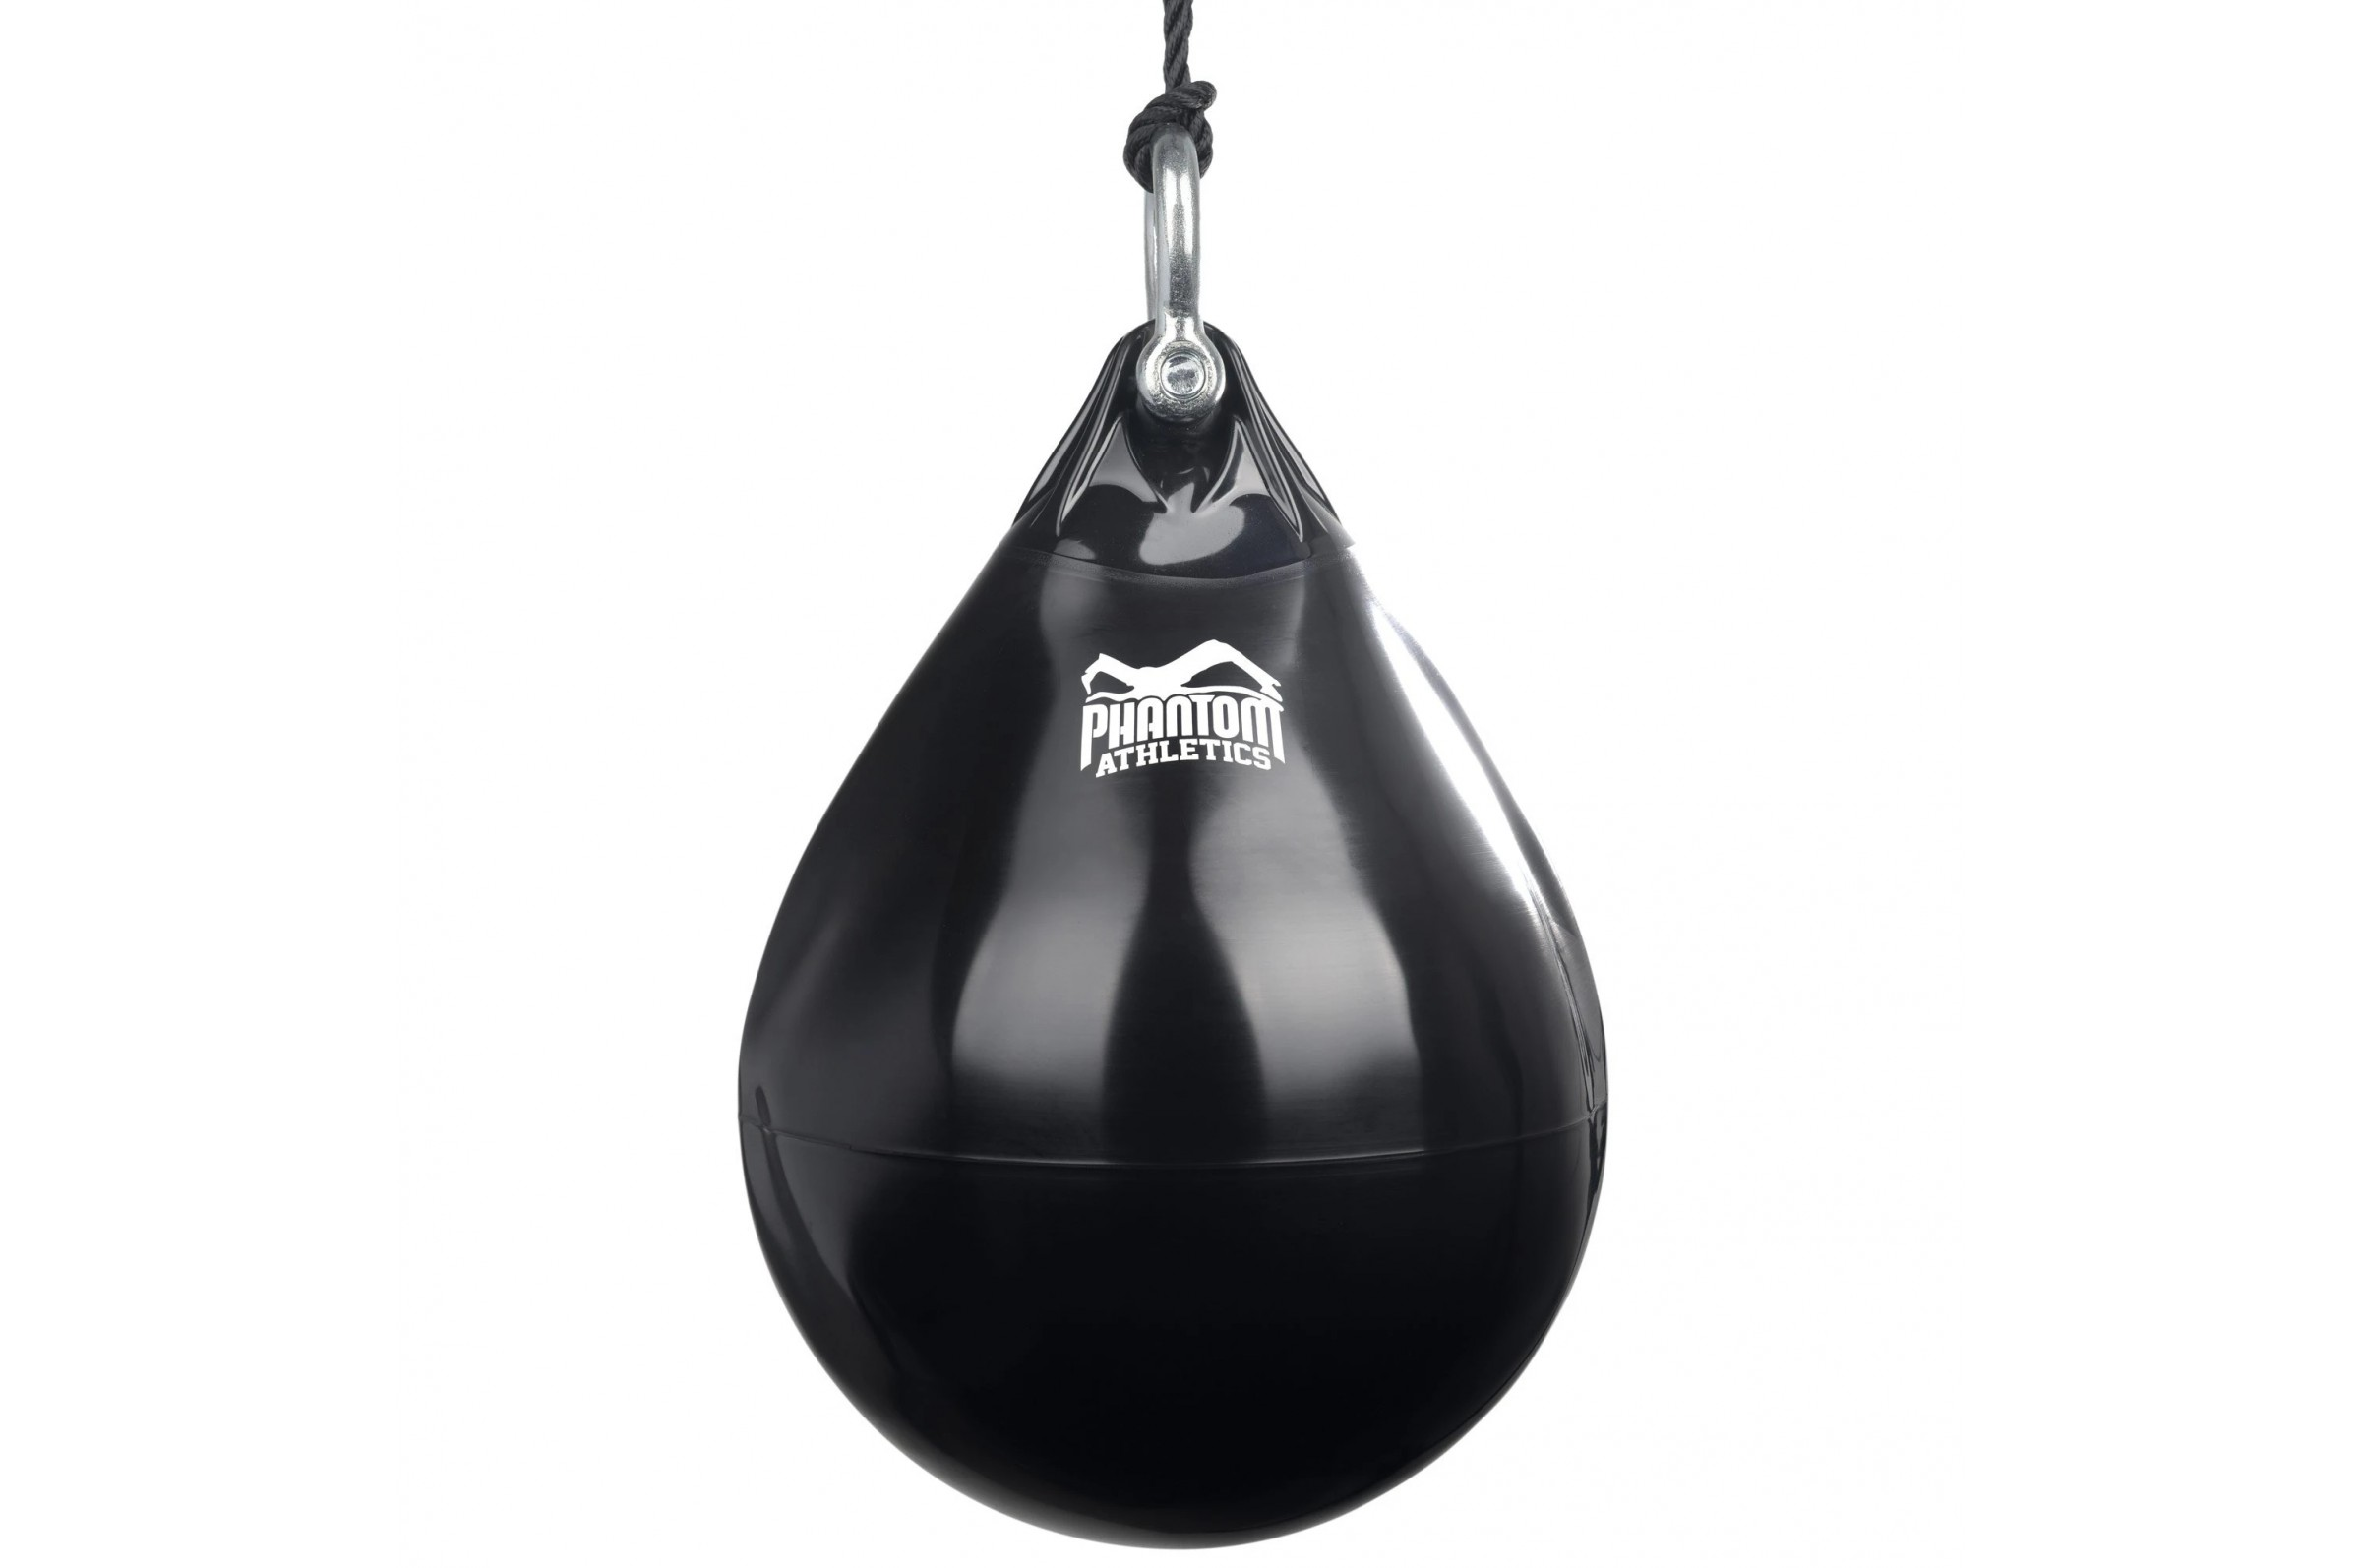 Water punching bag Hydro, Phantom Athtletics